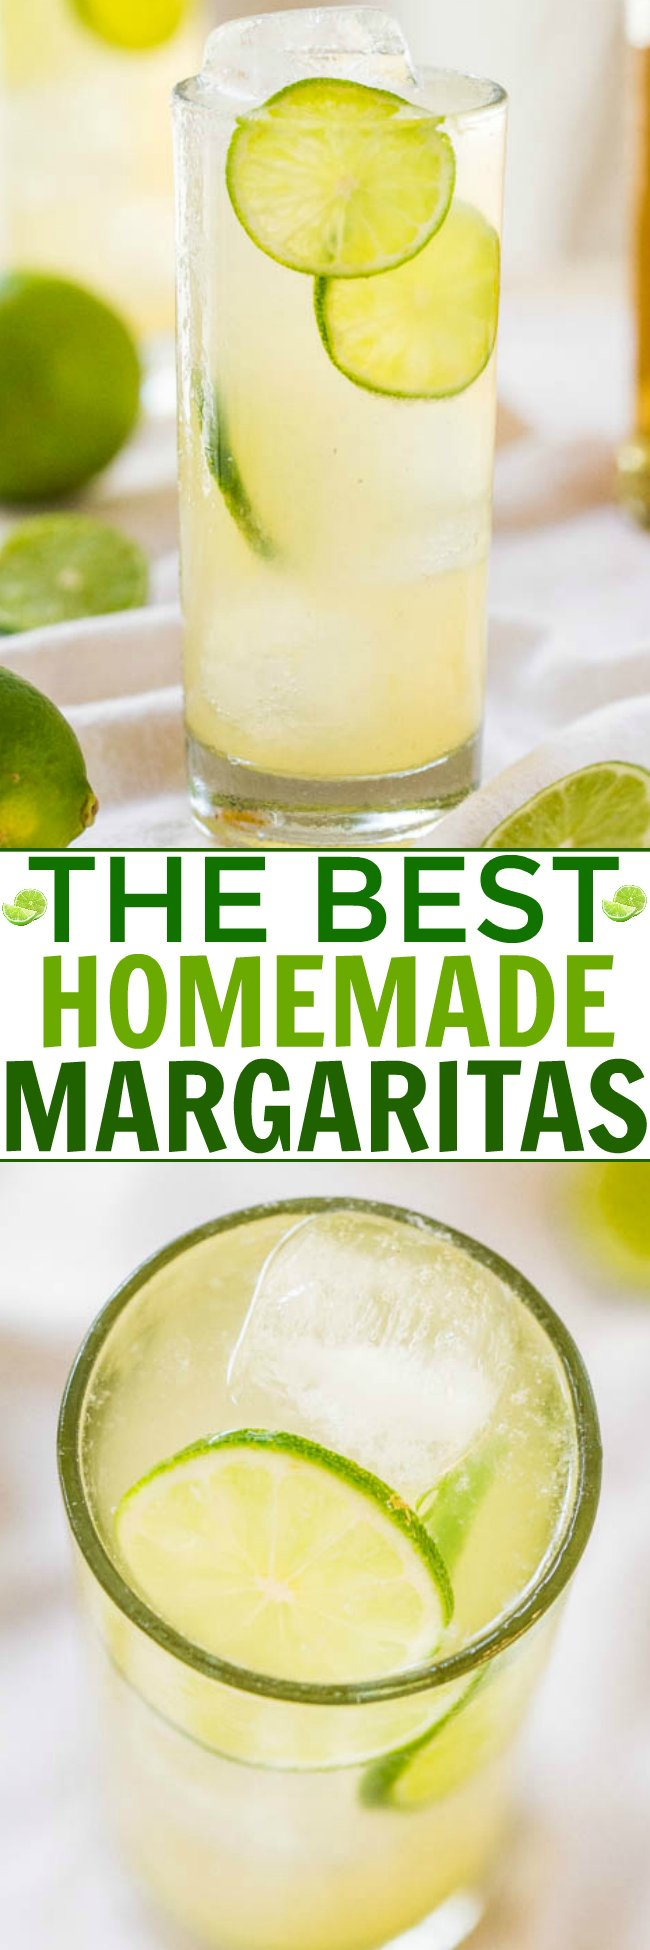 Homemade Margaritas — How to make the best margarita with just three natural ingredients! Nothing fake, neon green, and no sugary chemicals. This is the best homemade margarita recipe I've tried and it's the easiest!!